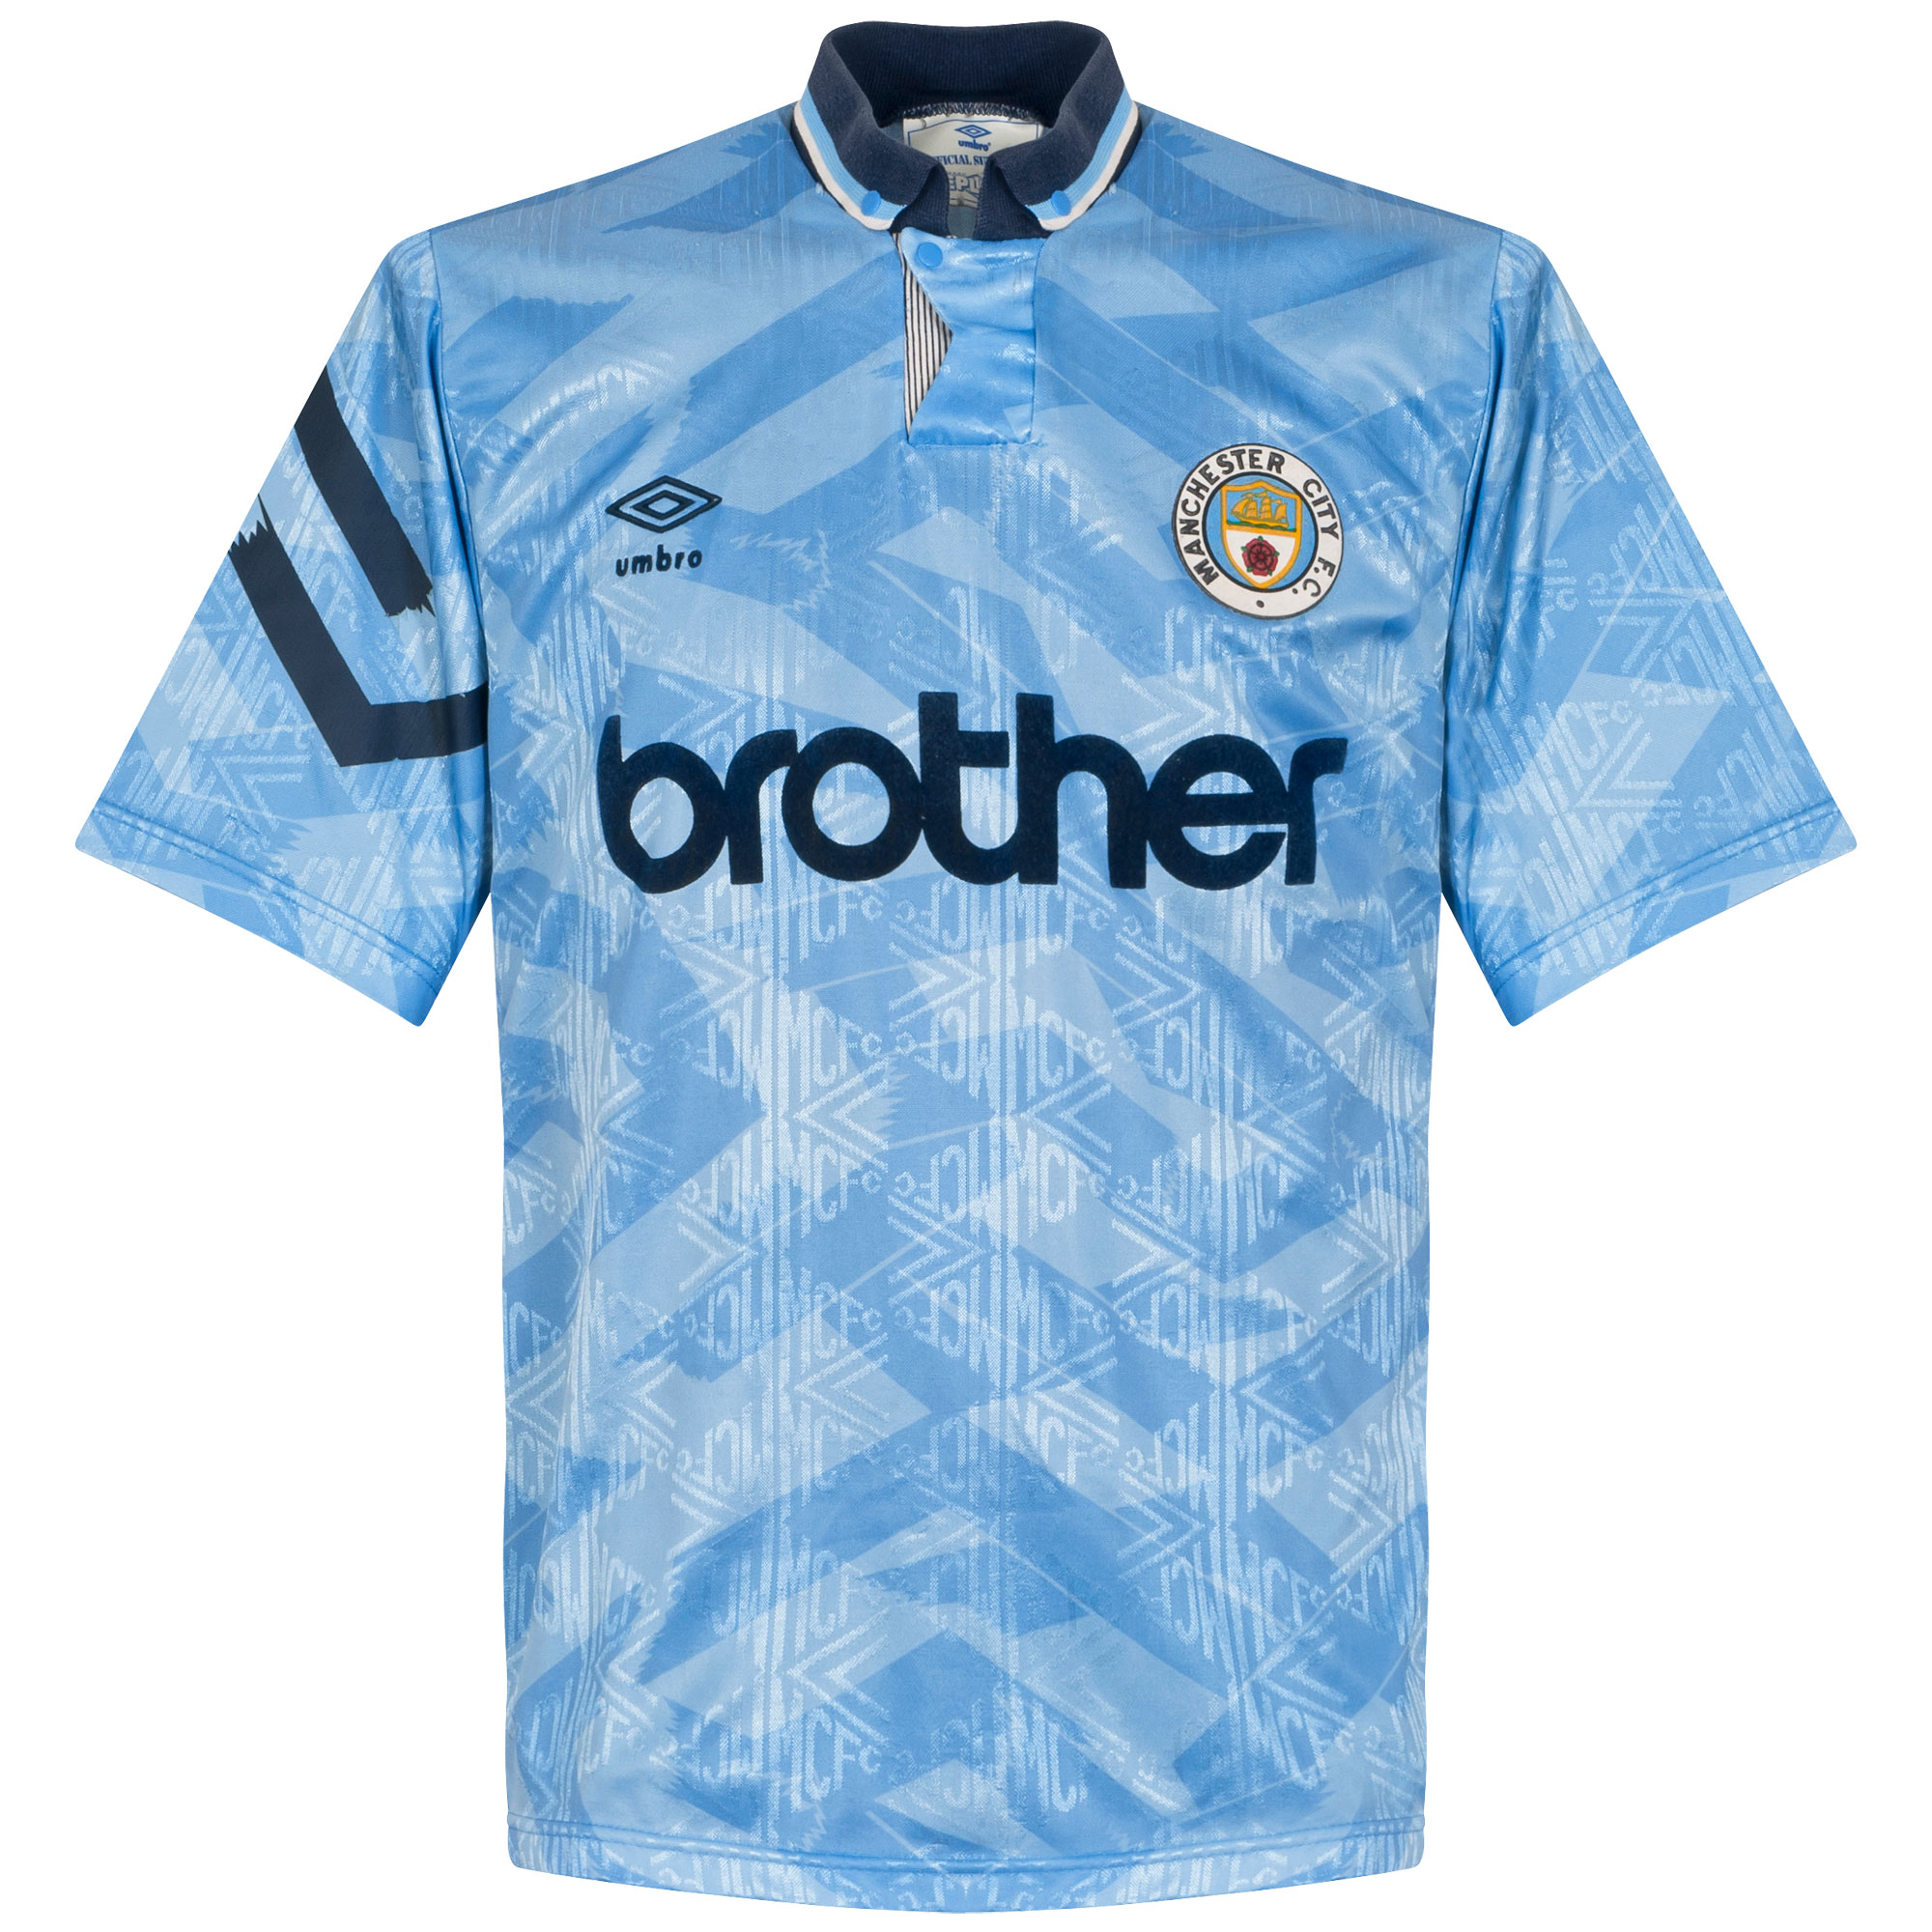 Umbro Manchester City 1991-1992 Home Shirt - USED Condition (Fair) - Size M